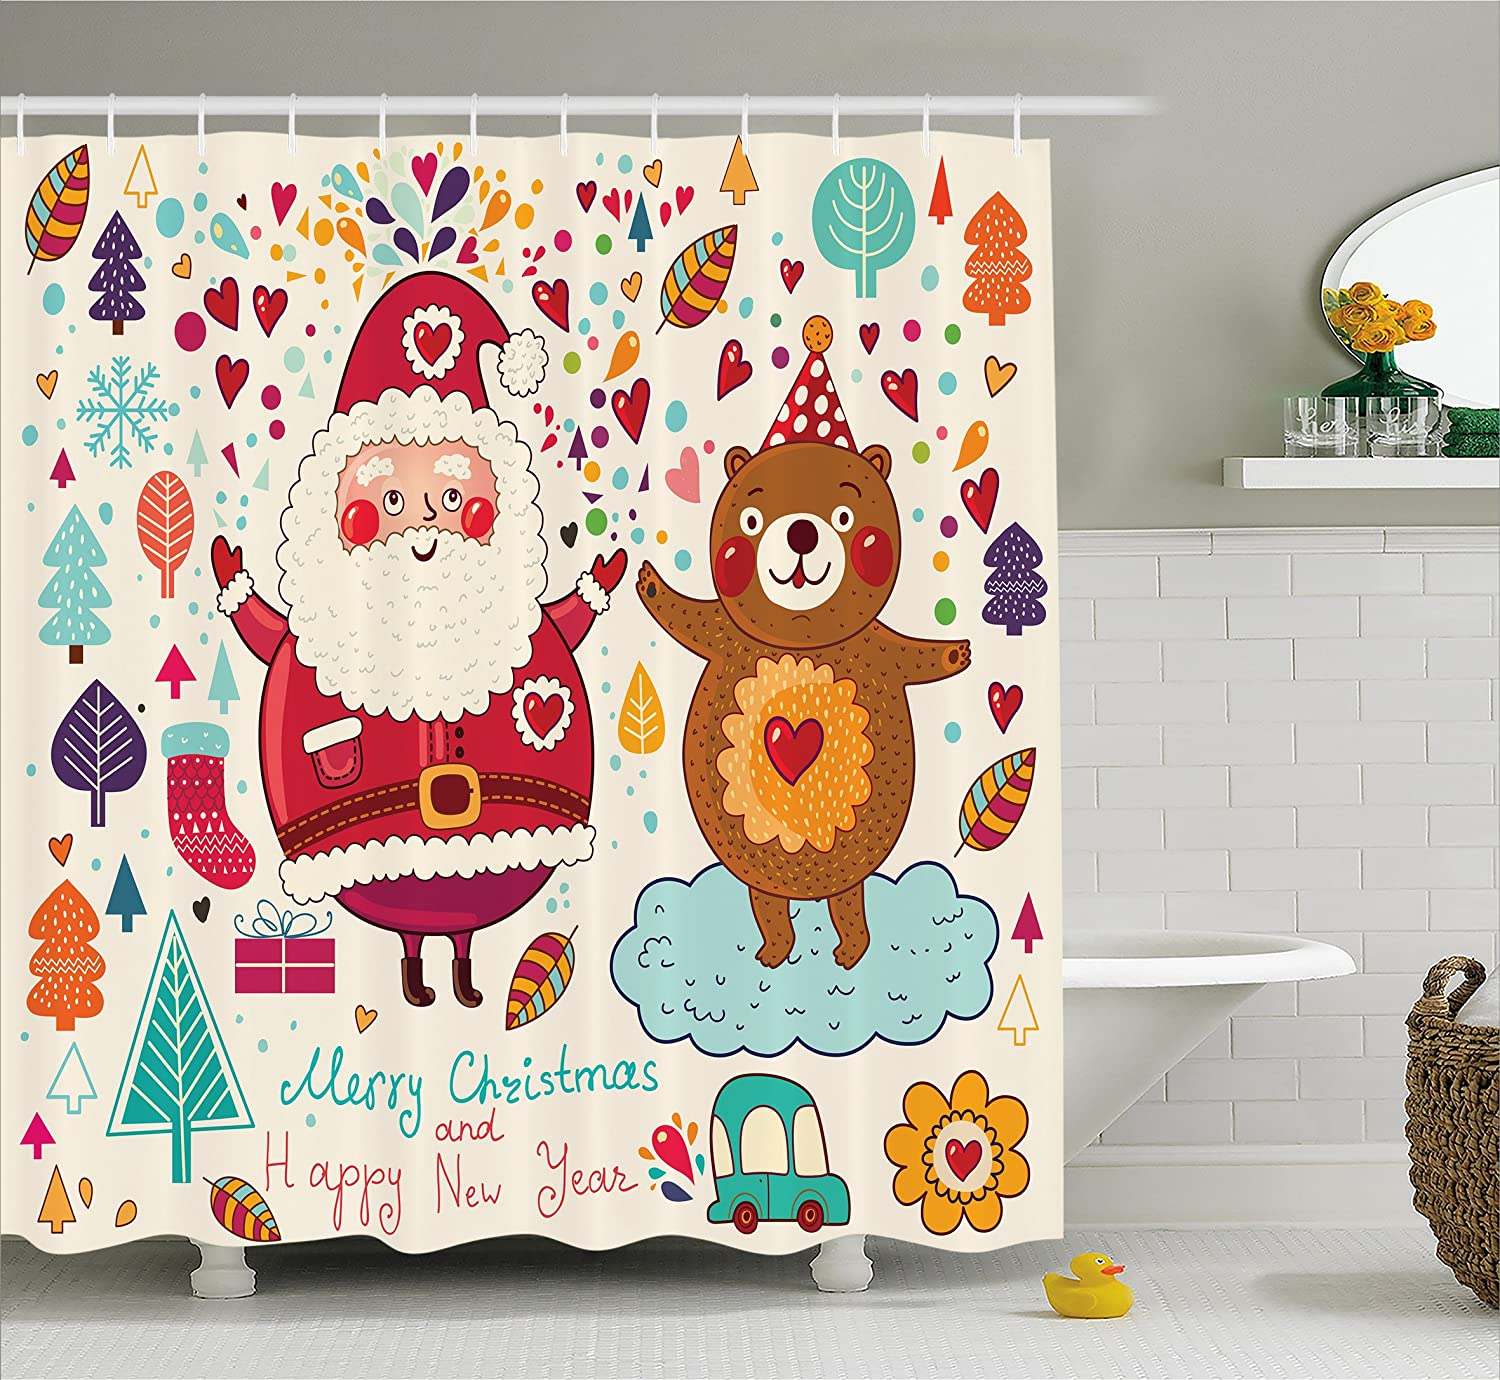 Kids Shower Curtain Funny by Ambesonne, Christmas Santa and Teddy Bear Vintage Christmas Ornaments for Party Room Nursery Decor Theme, Polyester Fabric Bathroom Set with Hooks, Multi